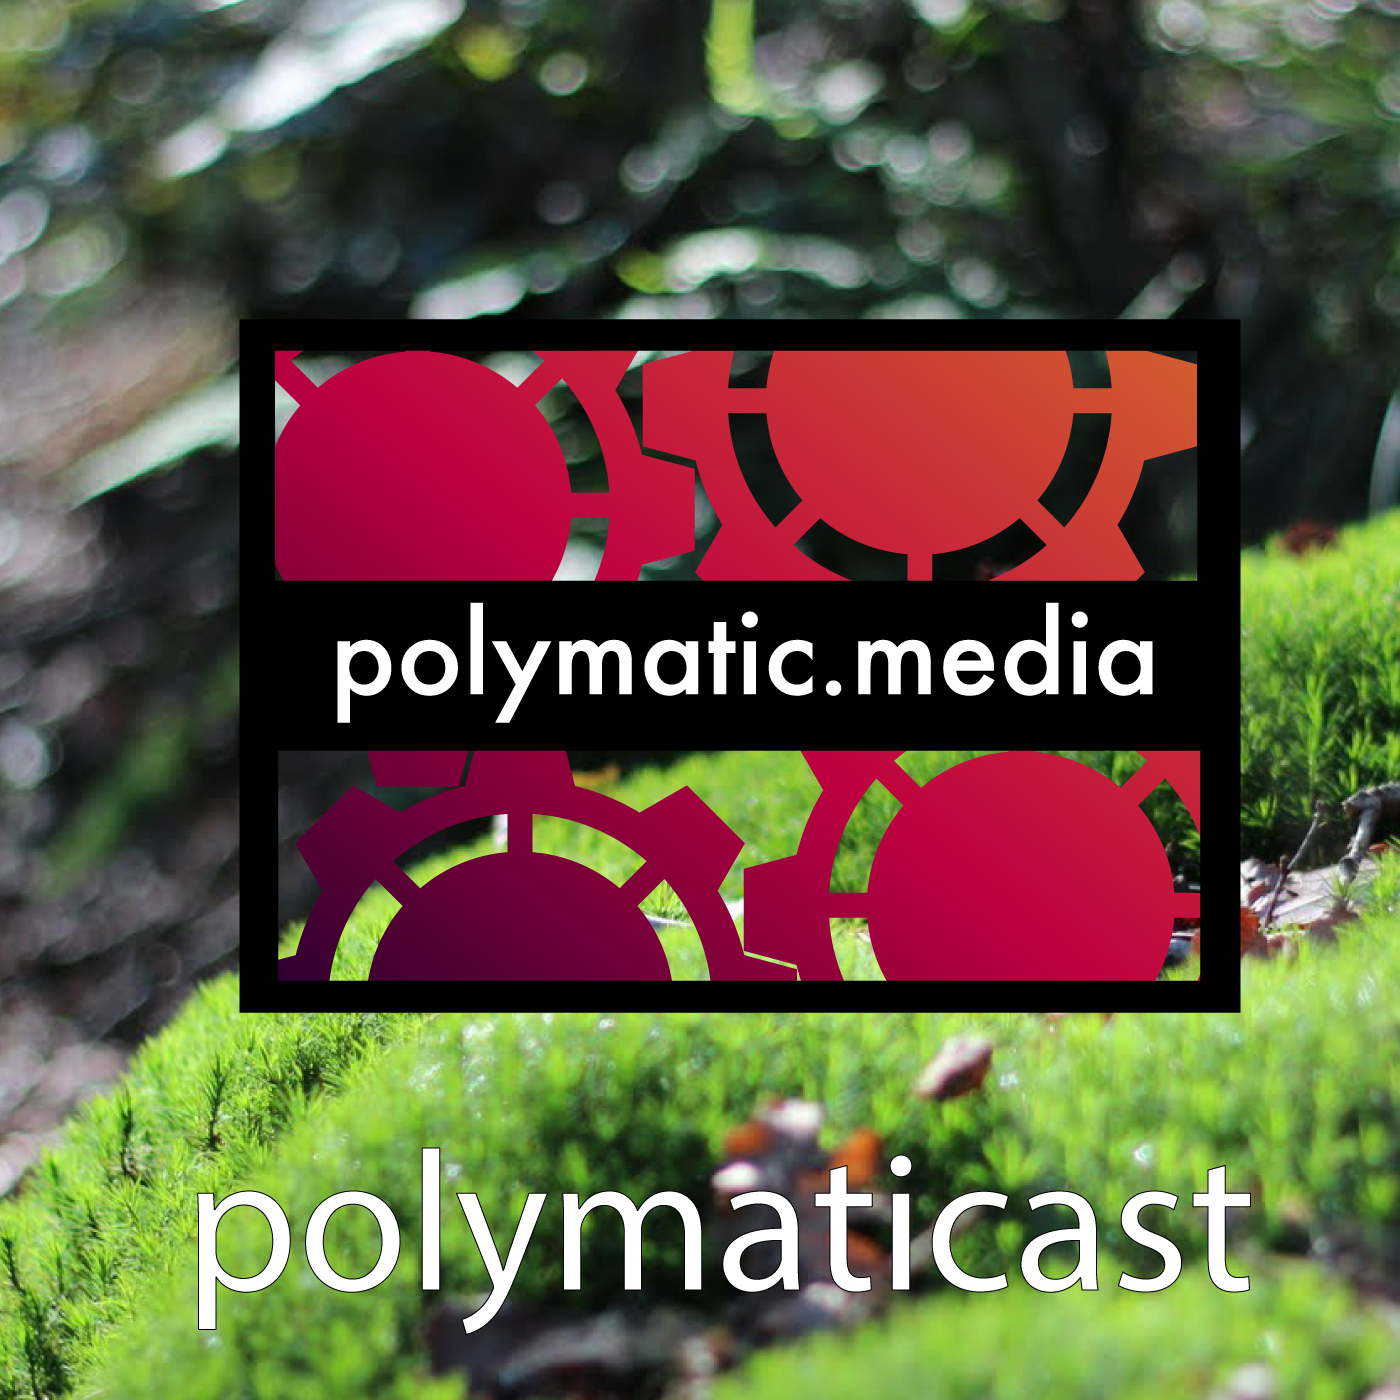 Polymaticast 10 what's going on